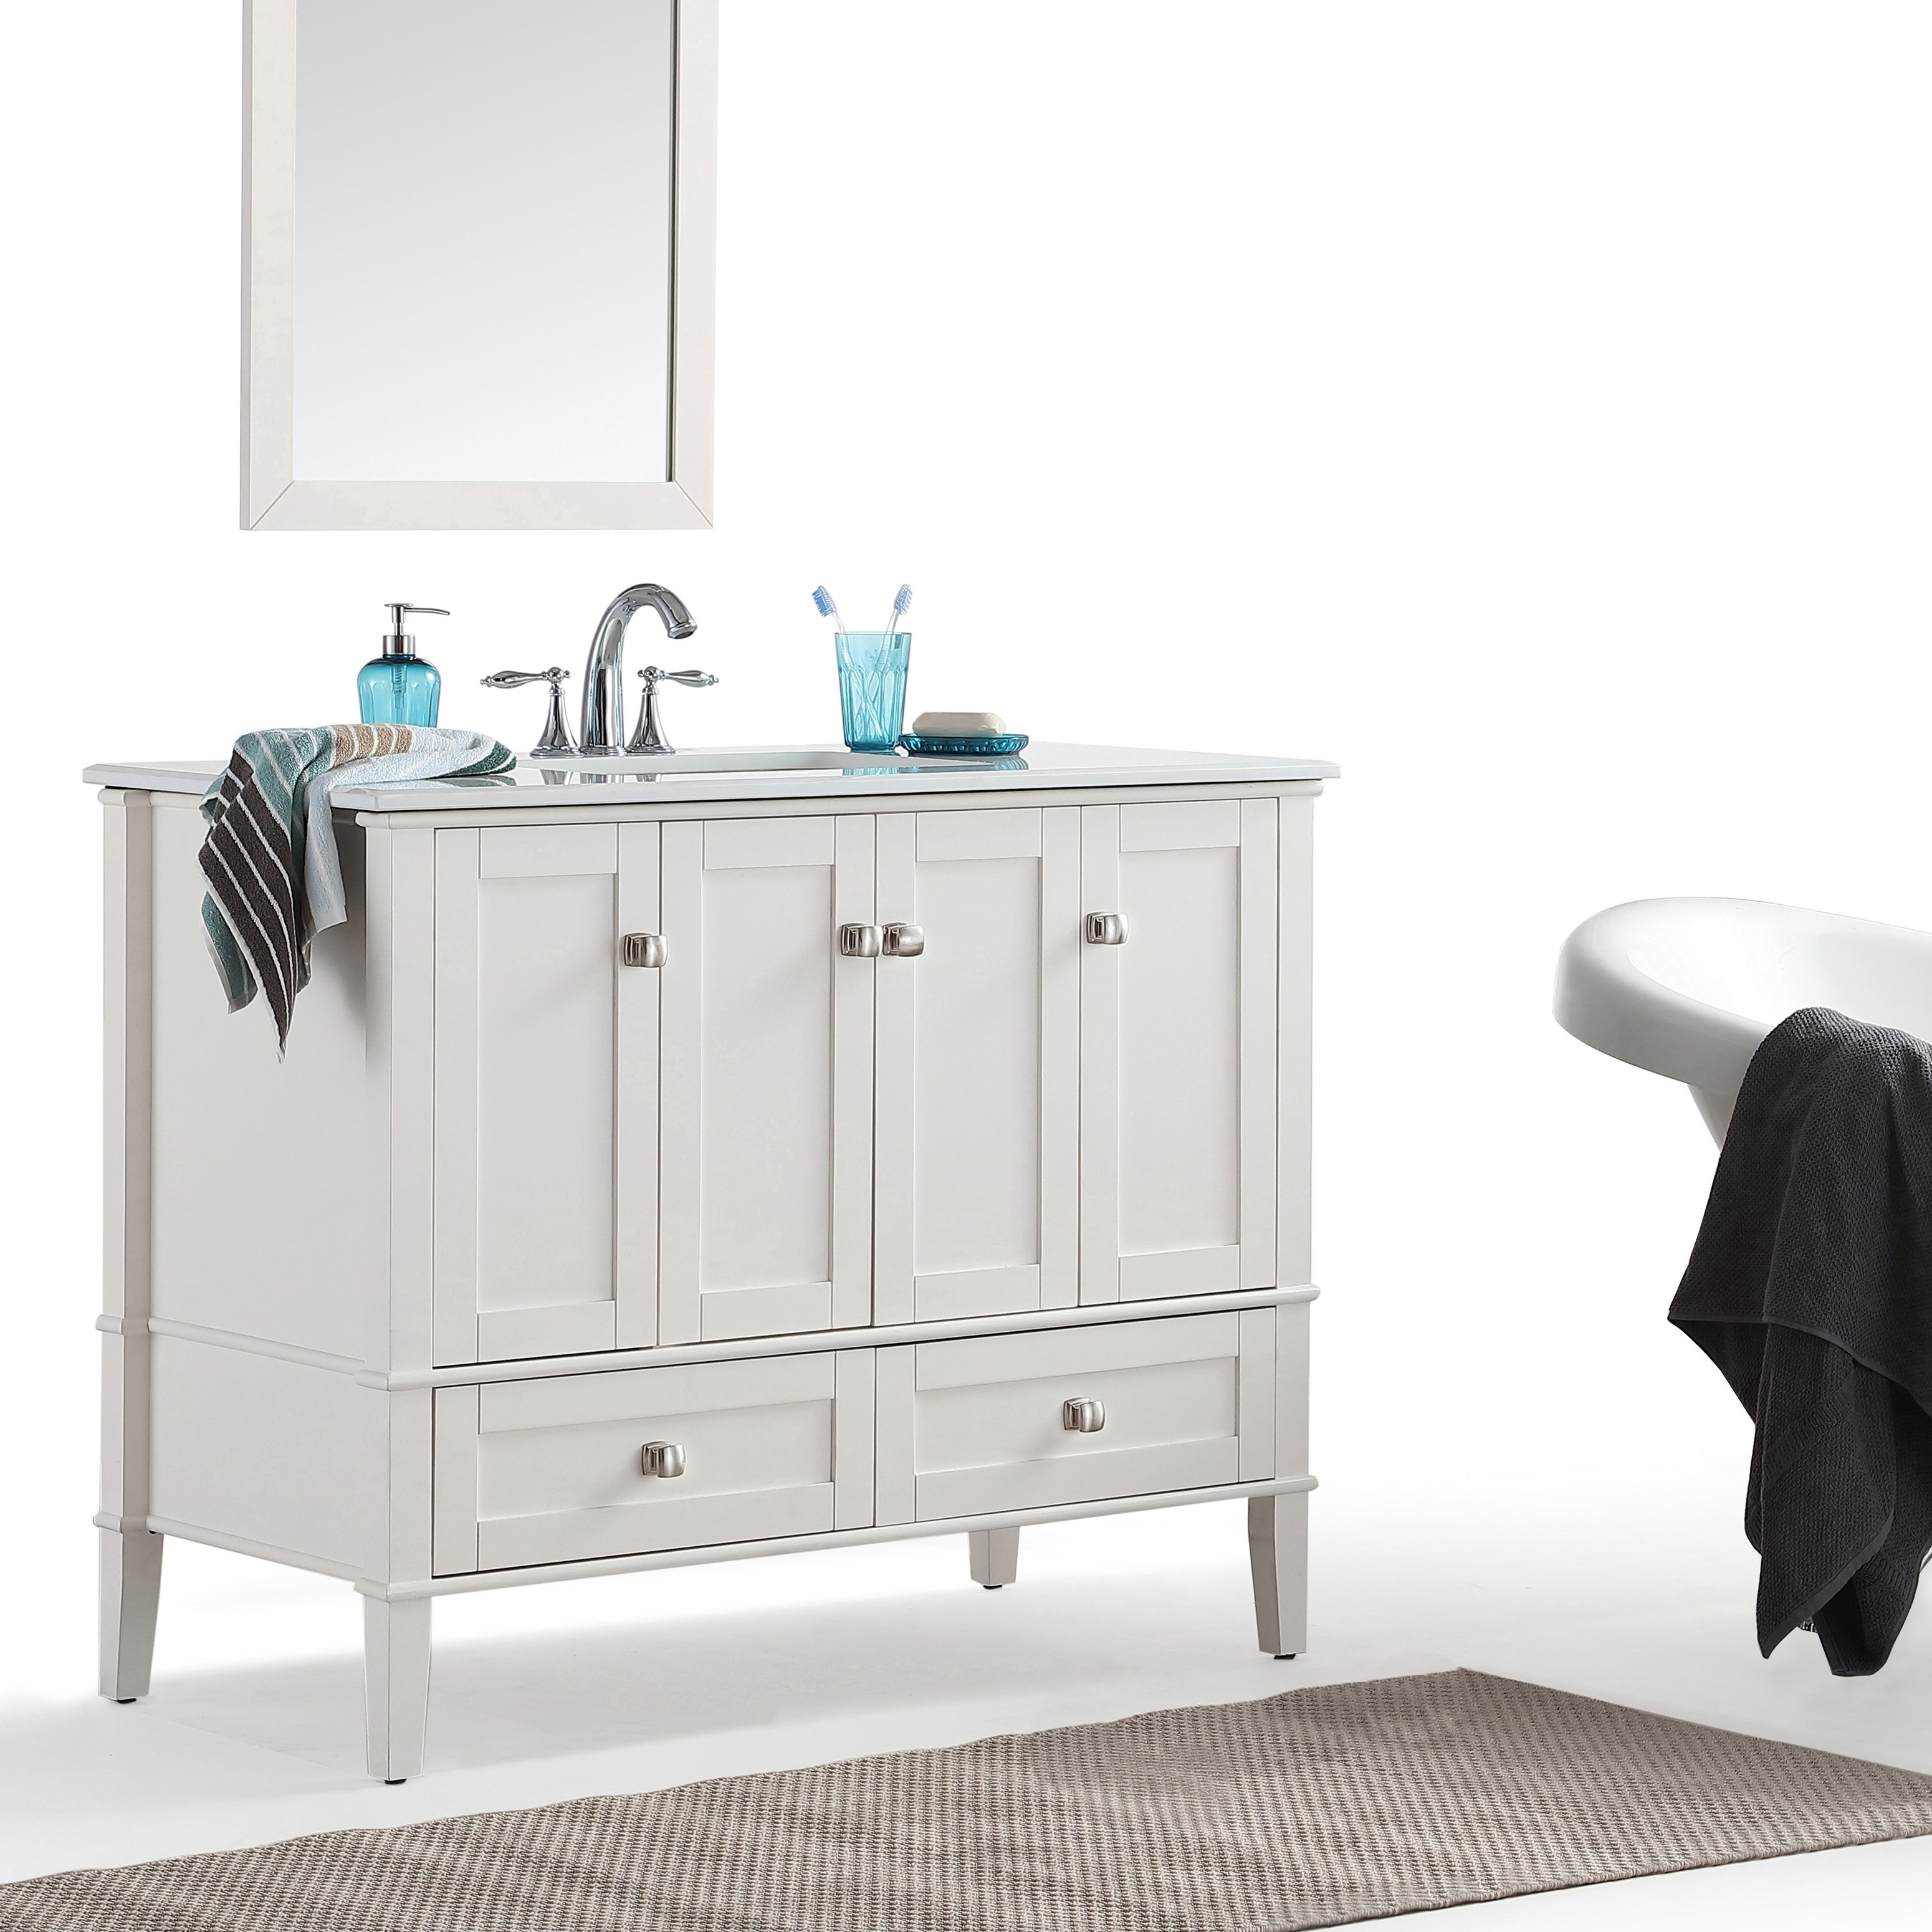 42 inch bathroom vanity. WYNDENHALL Windham Soft White 42-inch Bath Vanity With Top - Free Shipping Today Overstock 20608241 42 Inch Bathroom